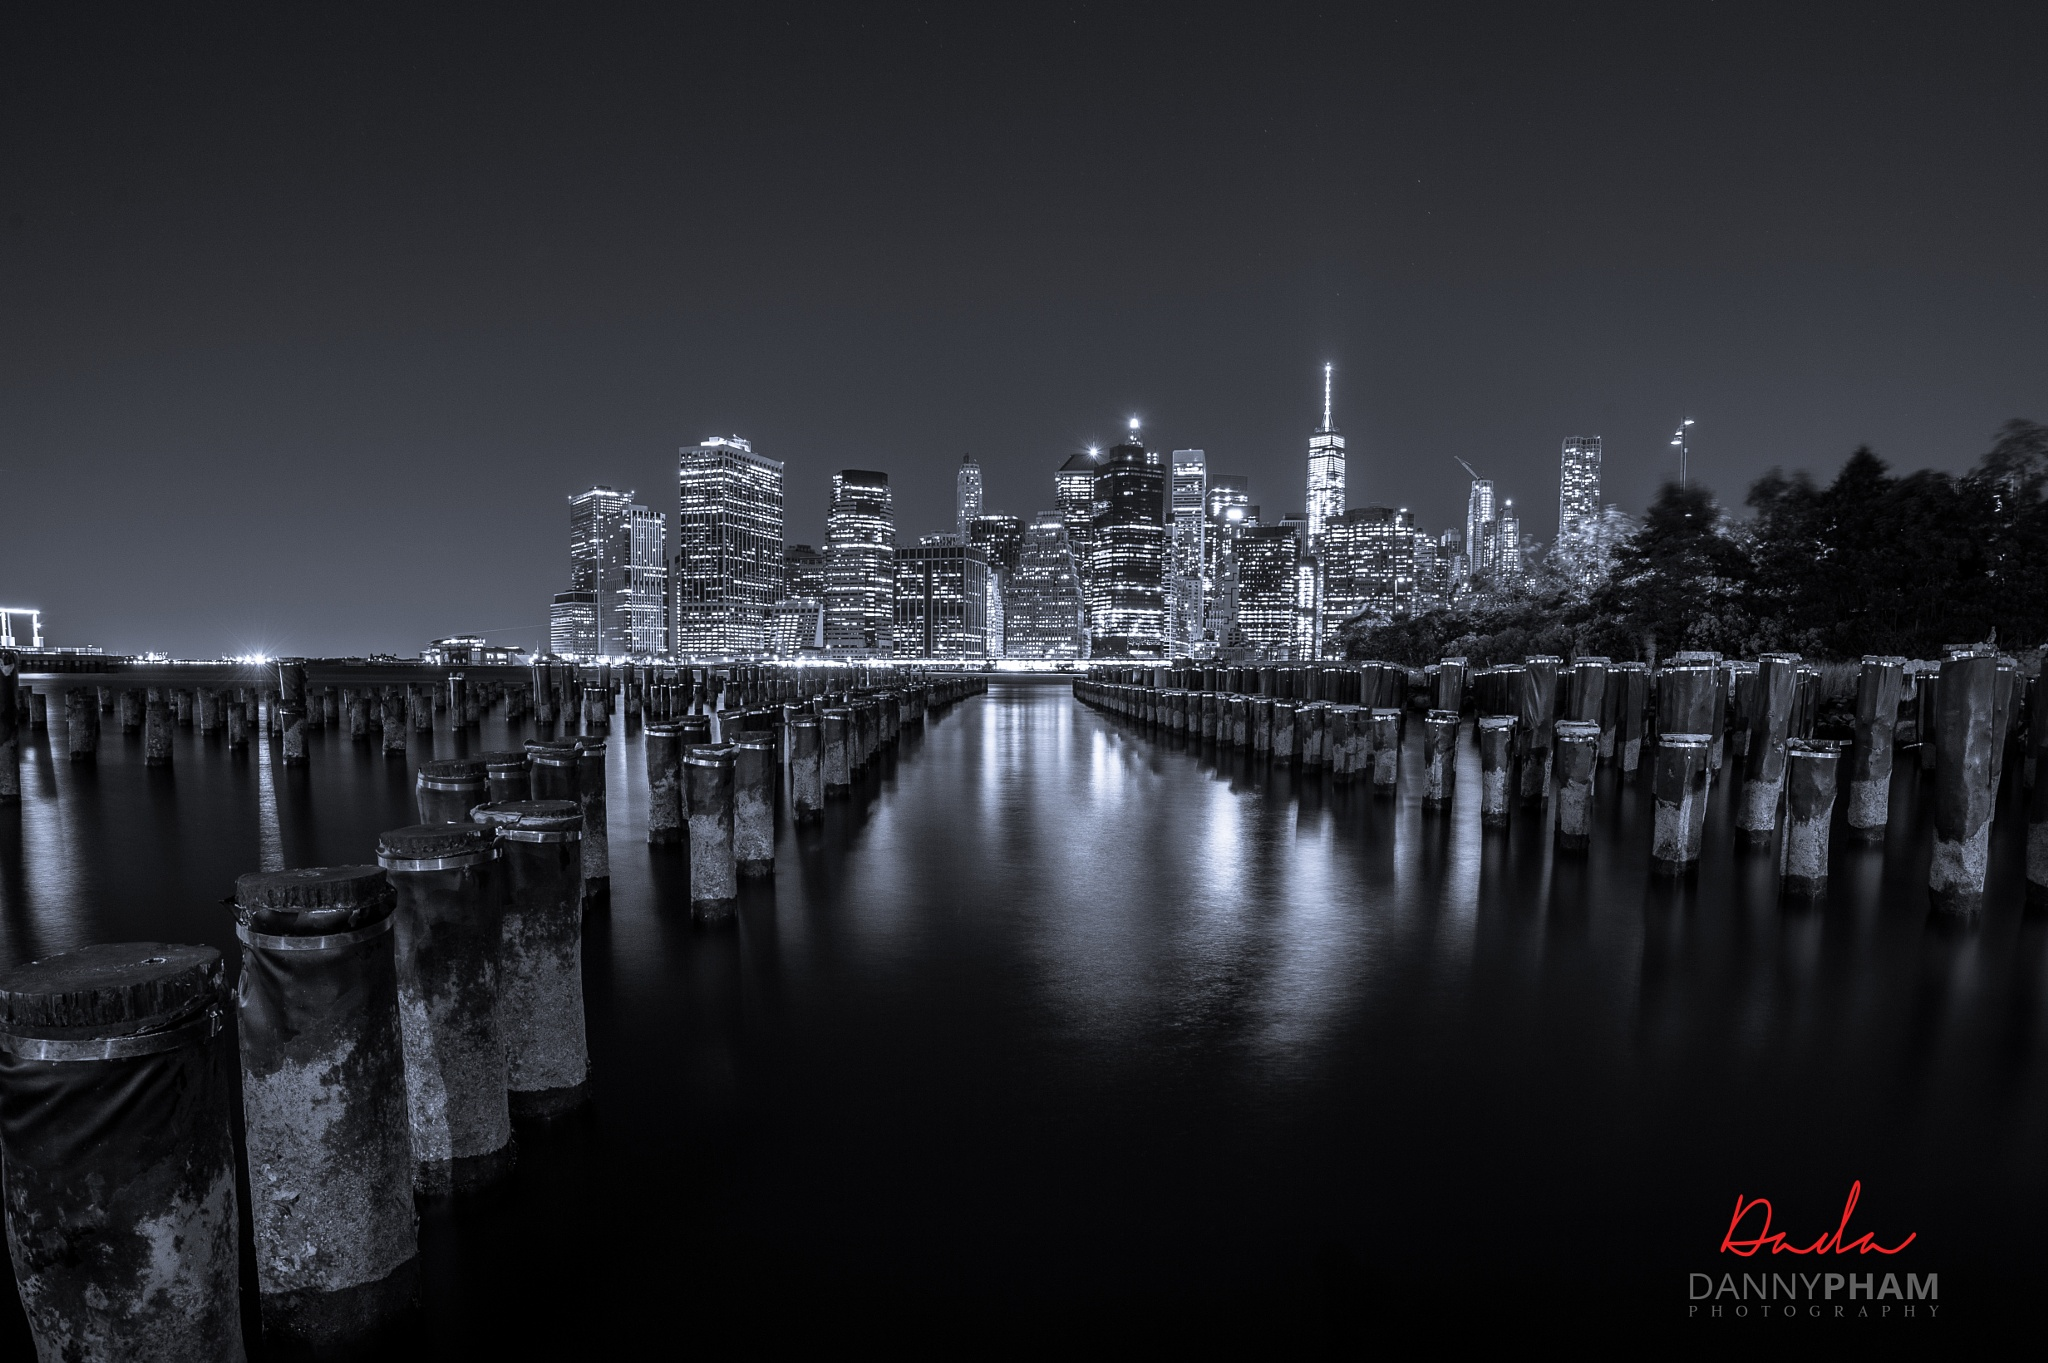 The world is also in black & white by Danny Pham